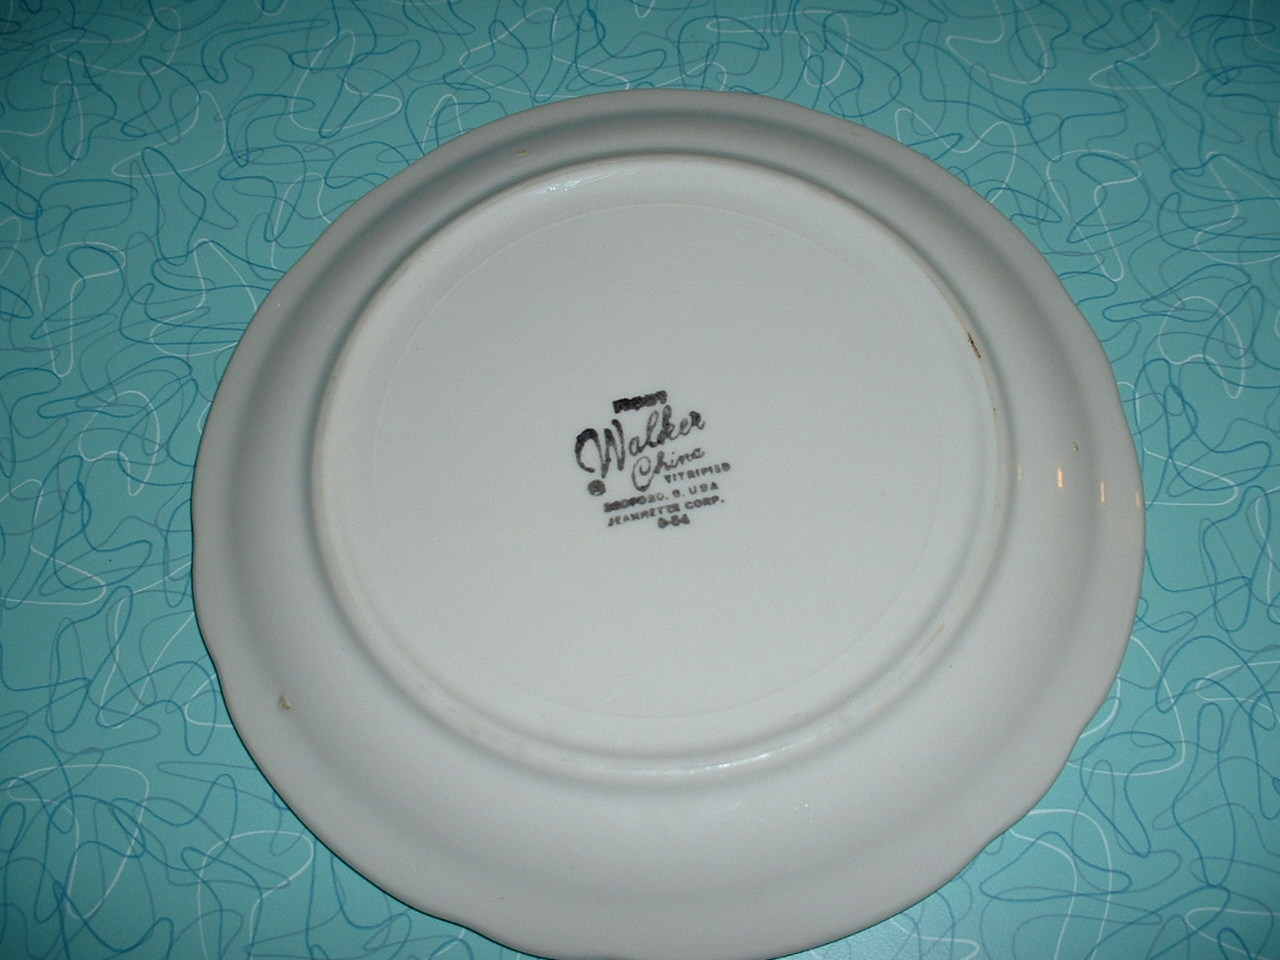 """IHOP The International House of Pancakes 7 1/4"""" plate by WALKER CHINA"""